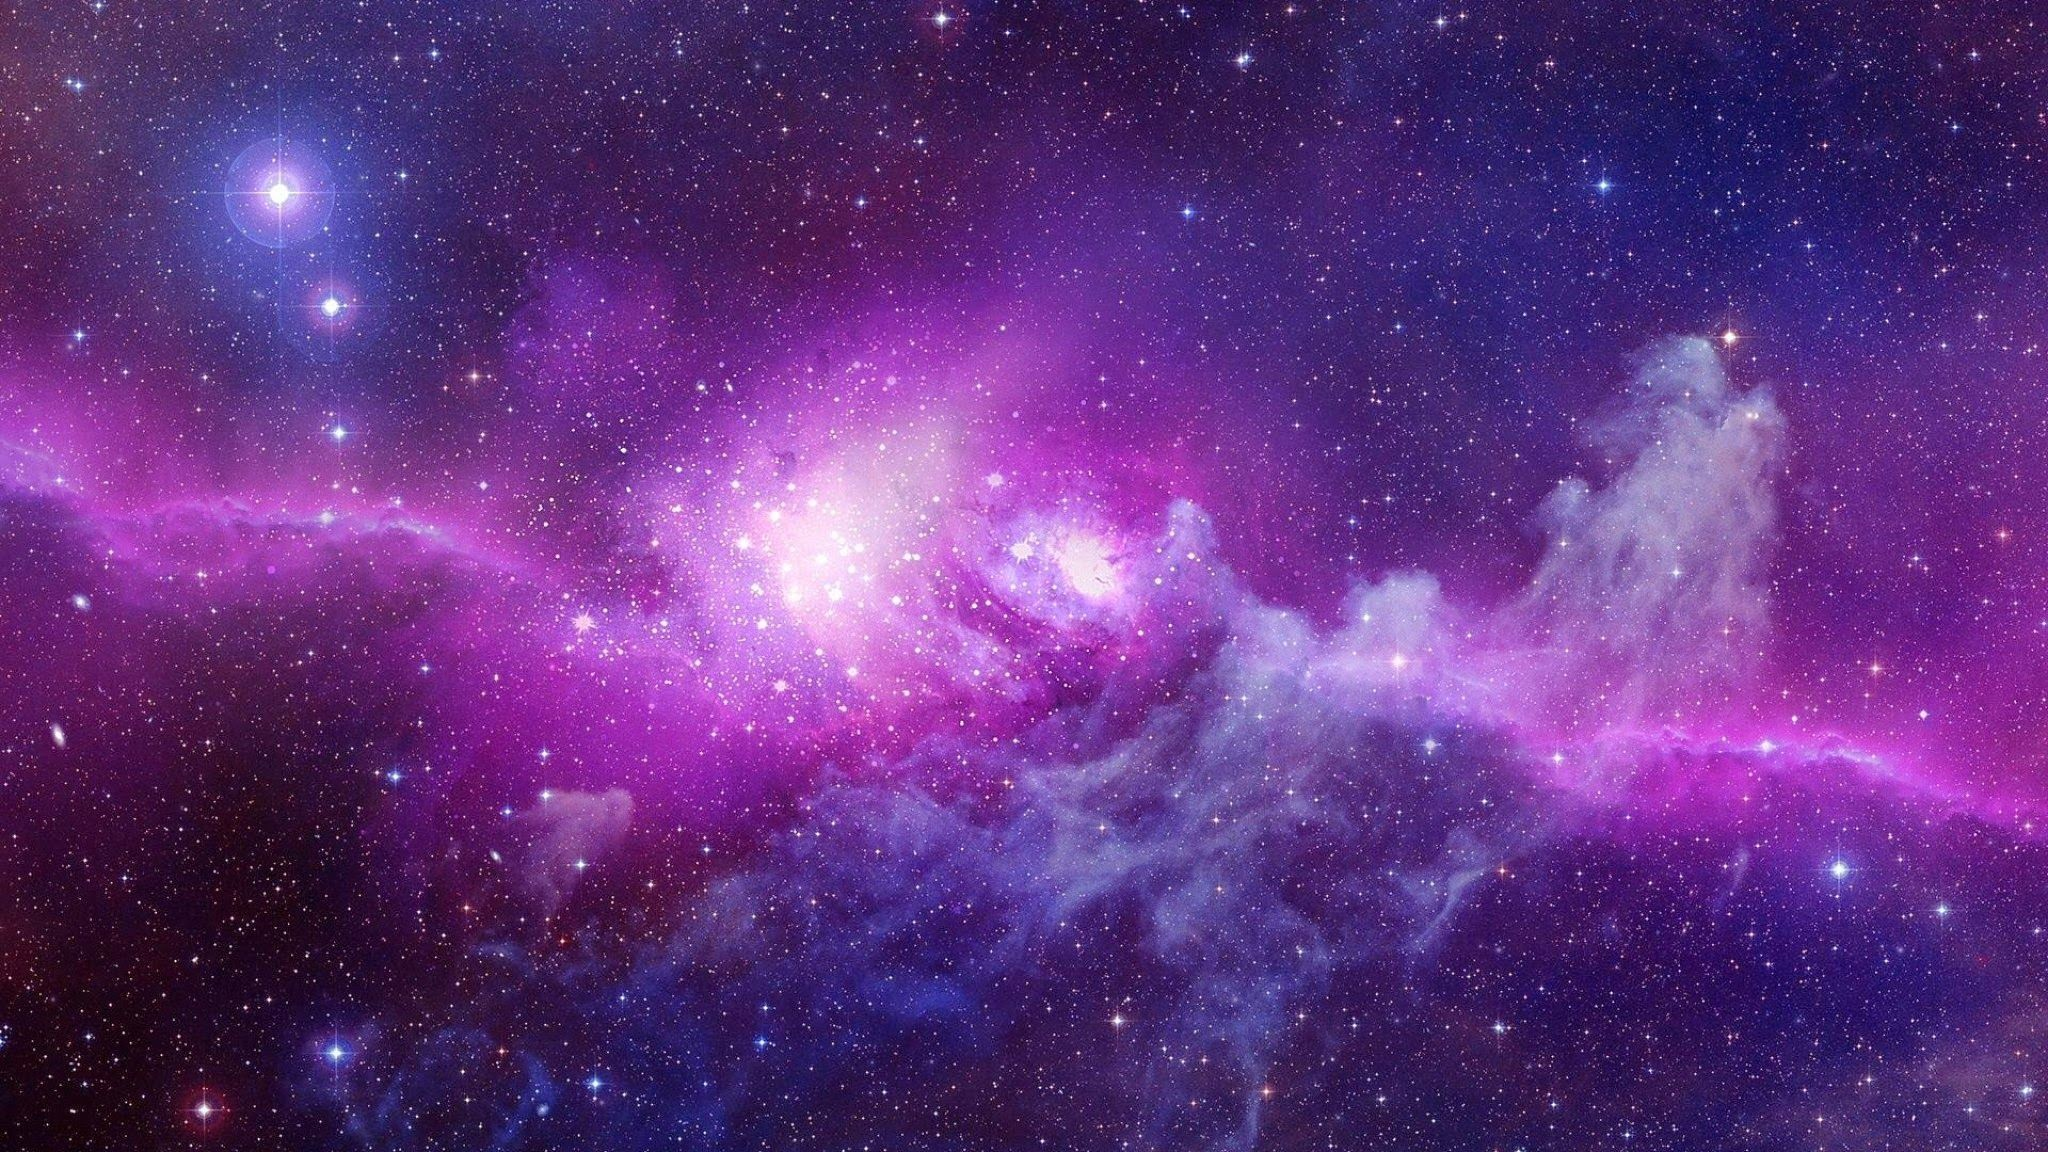 Space Wallpaper 2048 By 1152 88 Images